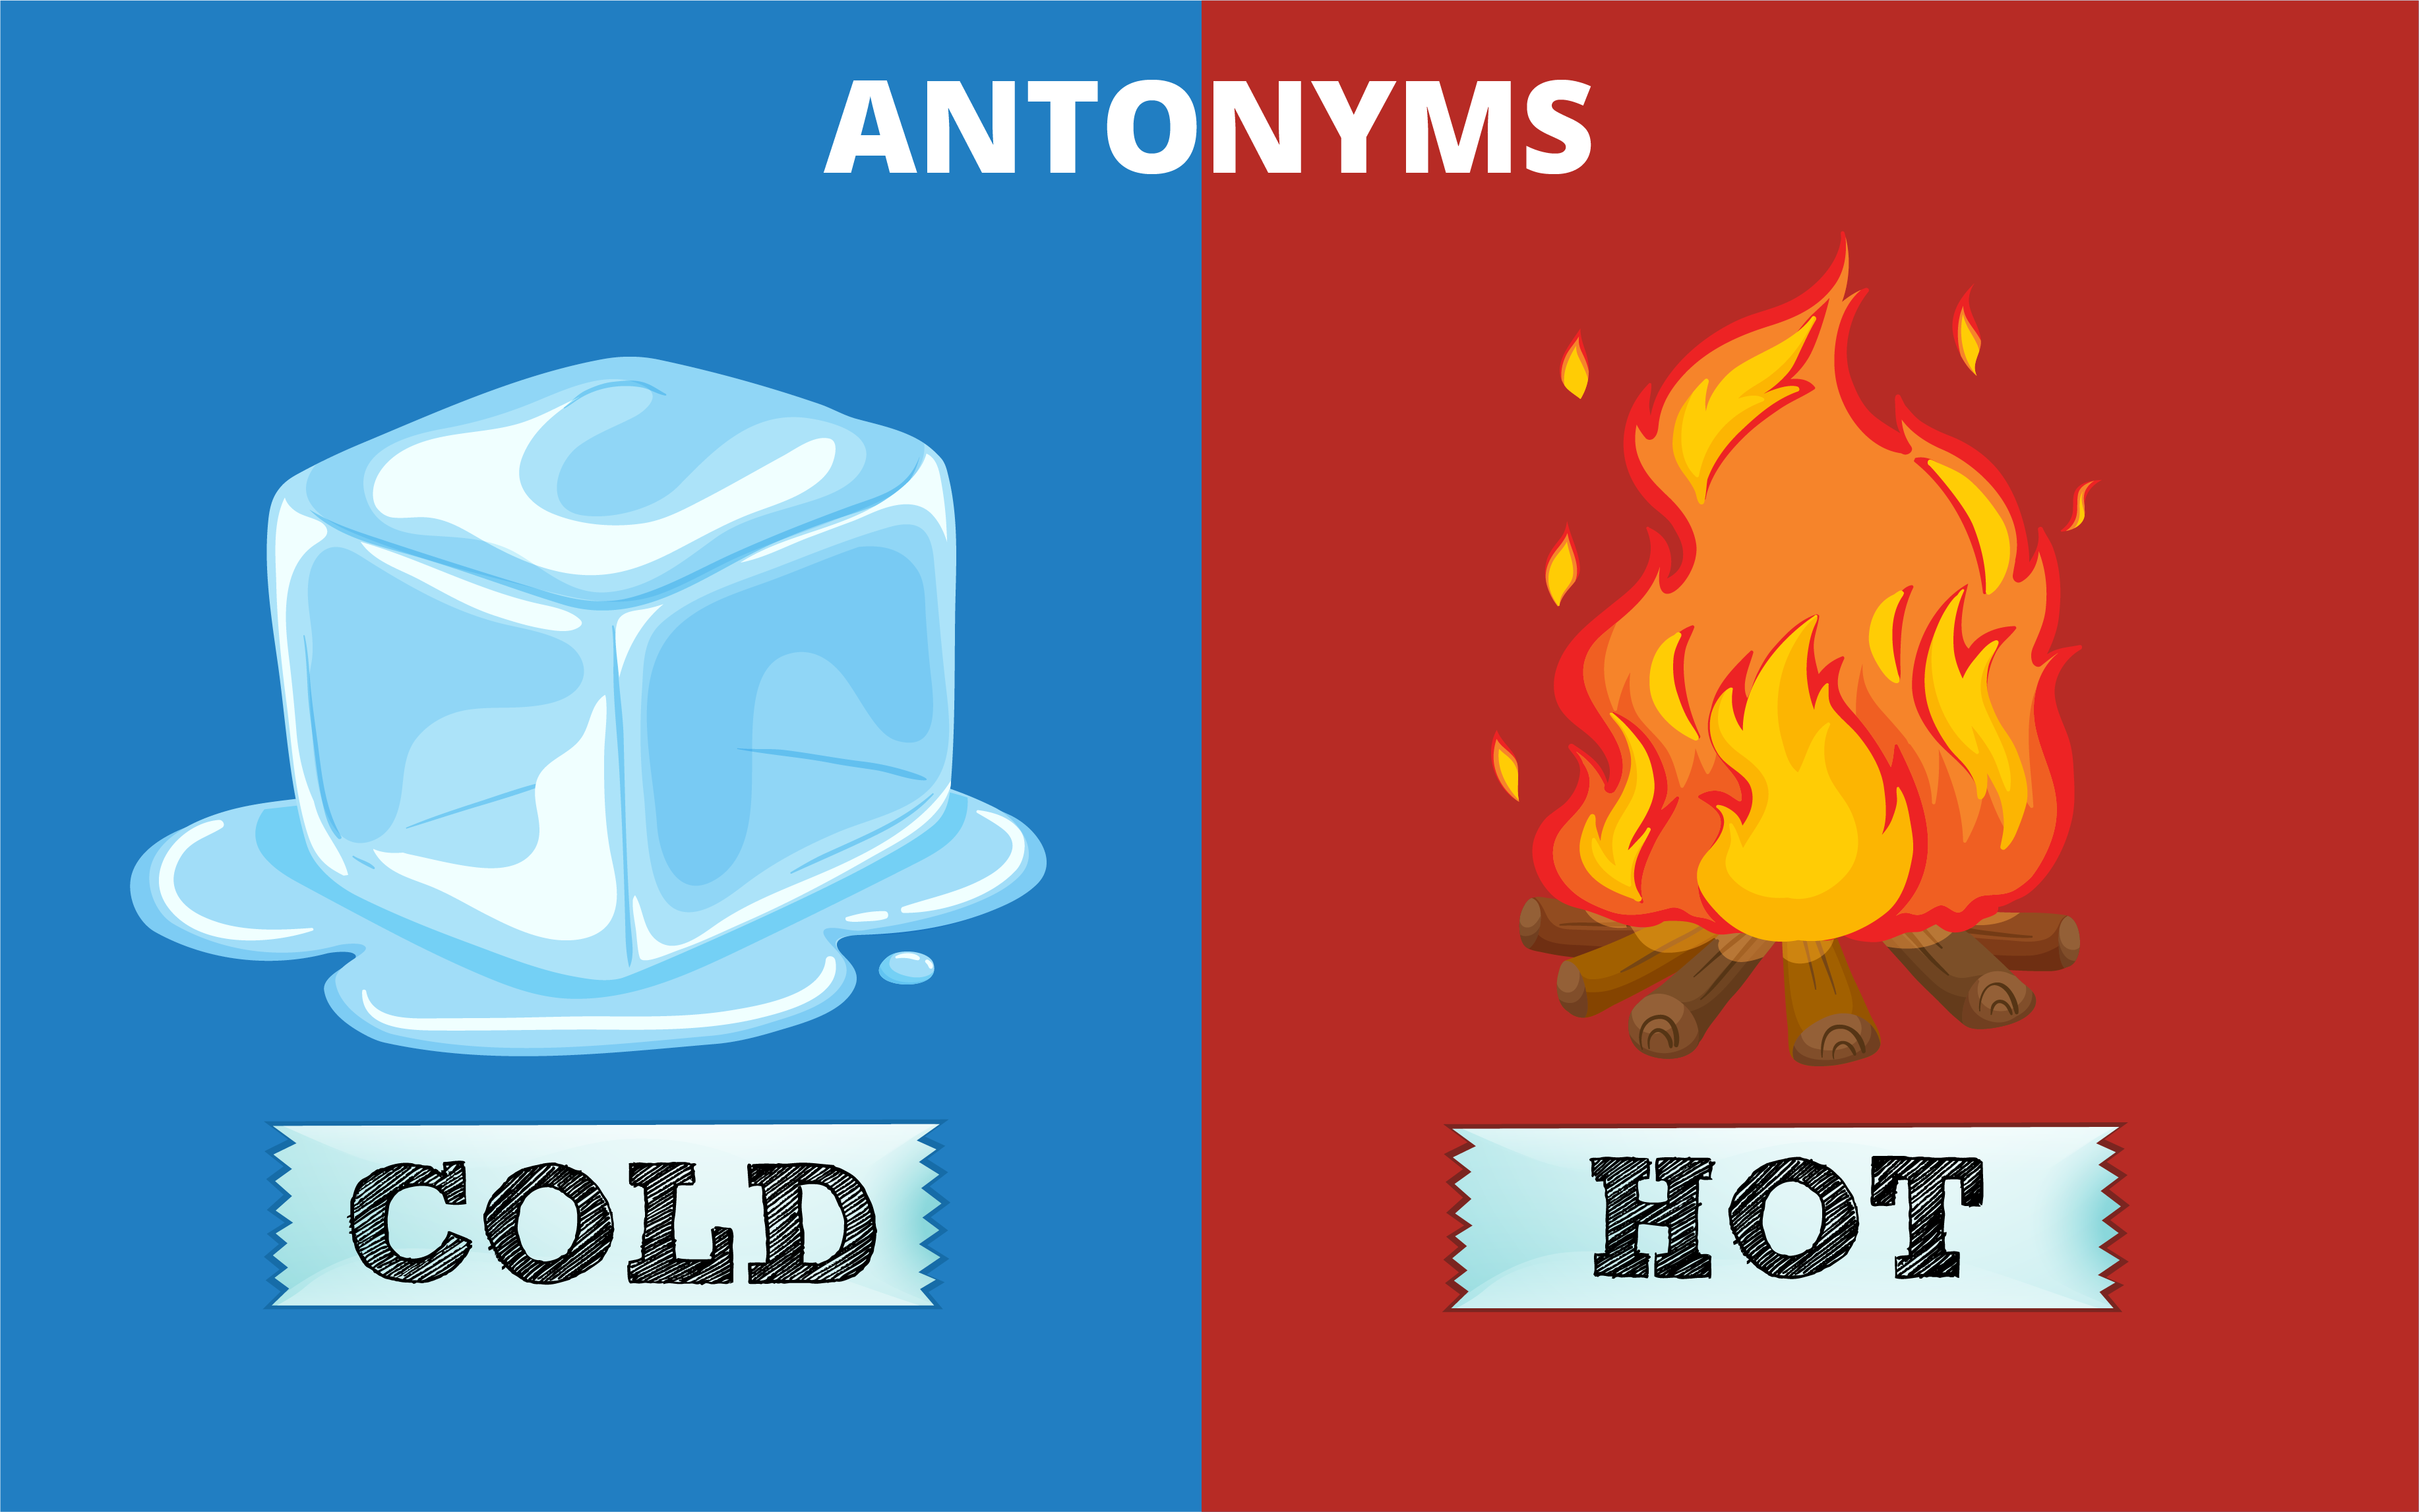 50 Difficult Antonyms With Meanings & Examples - Leverage Edu